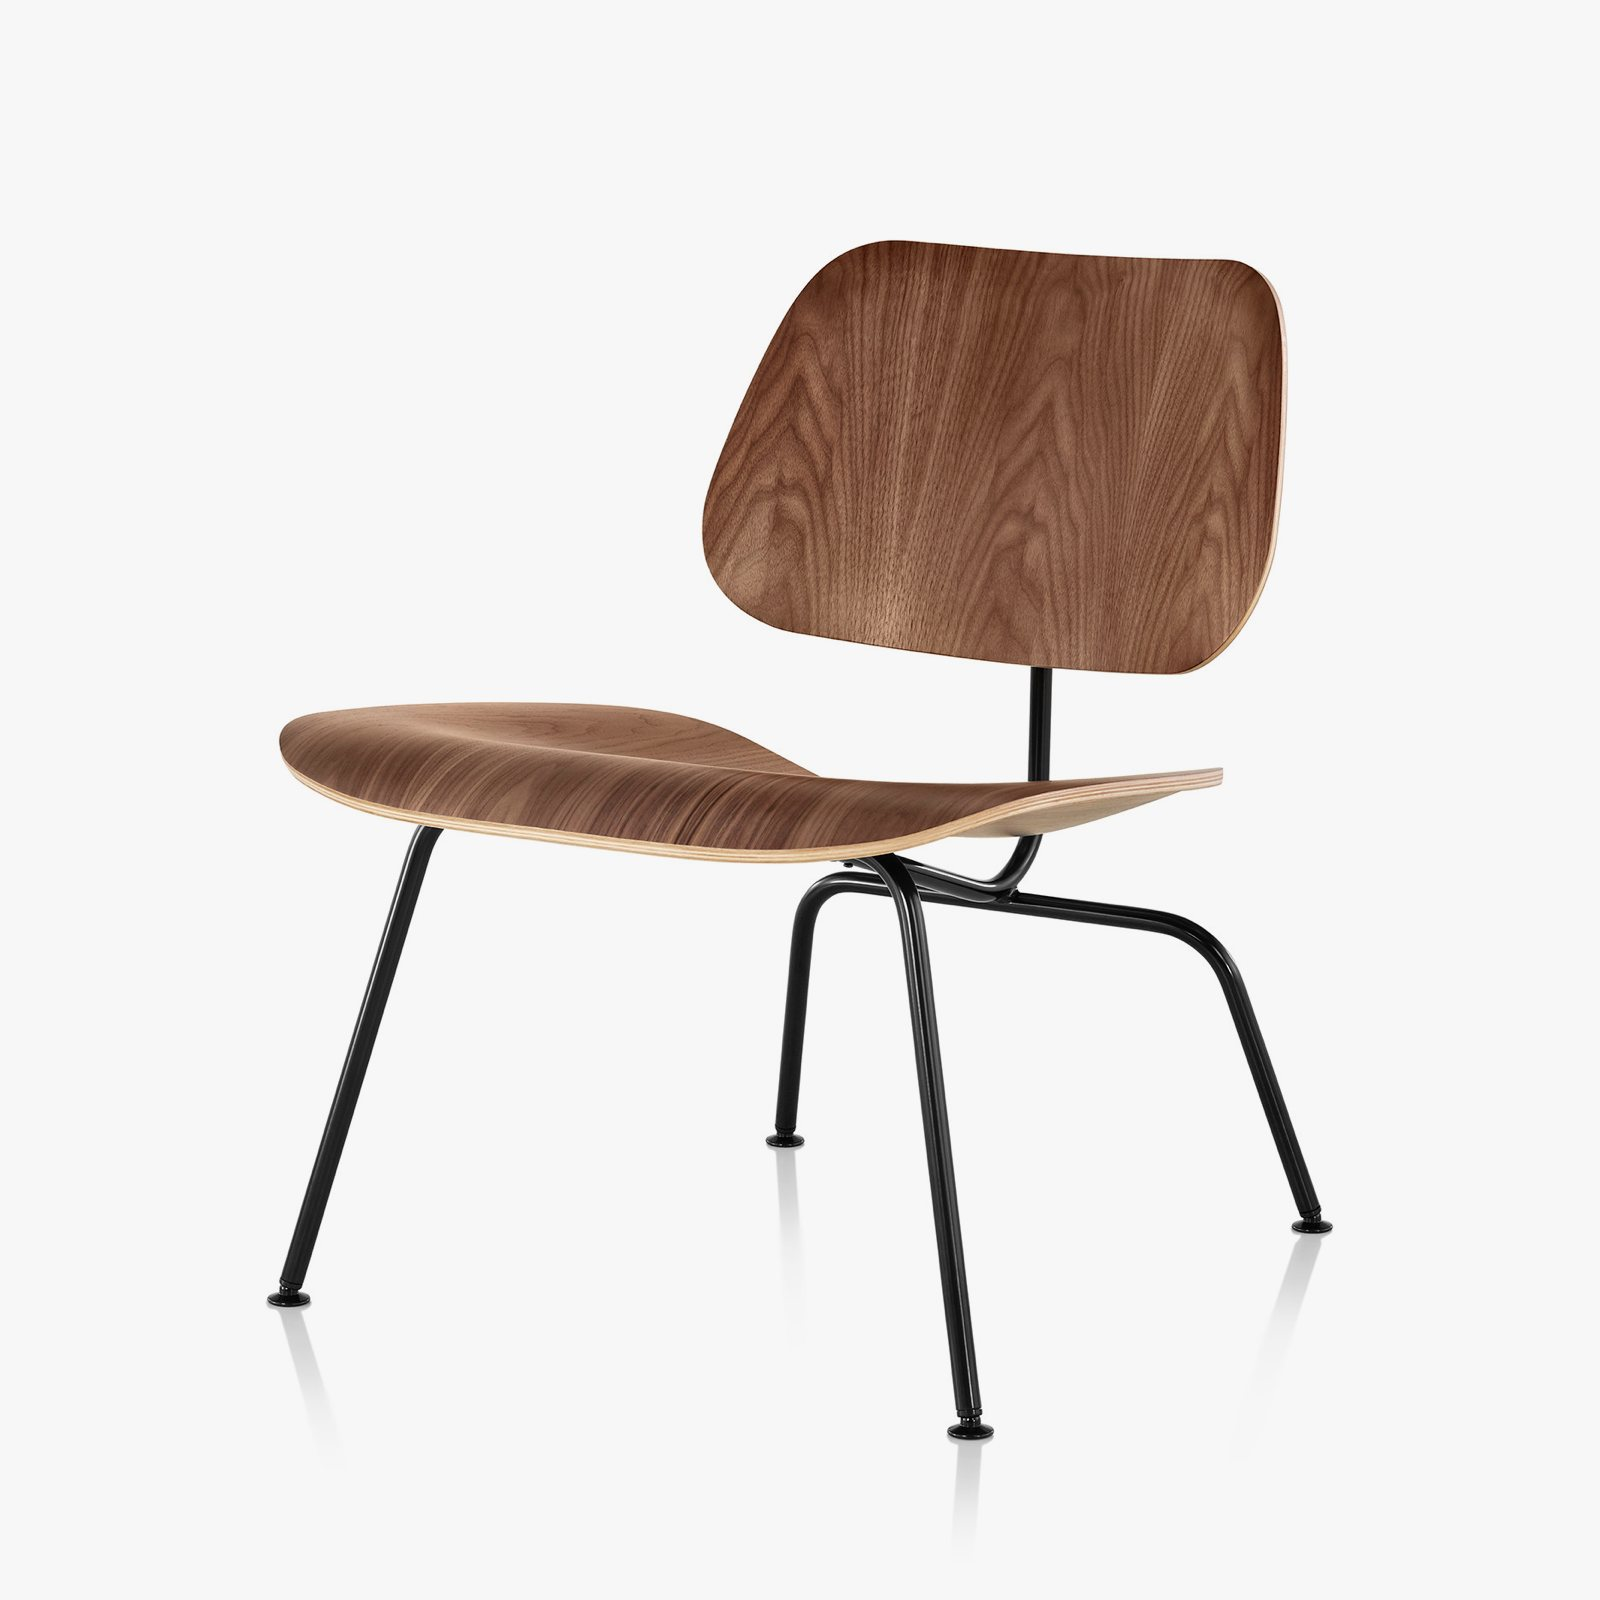 Eames Molded Plywood Lounge Chair With Metal Base By